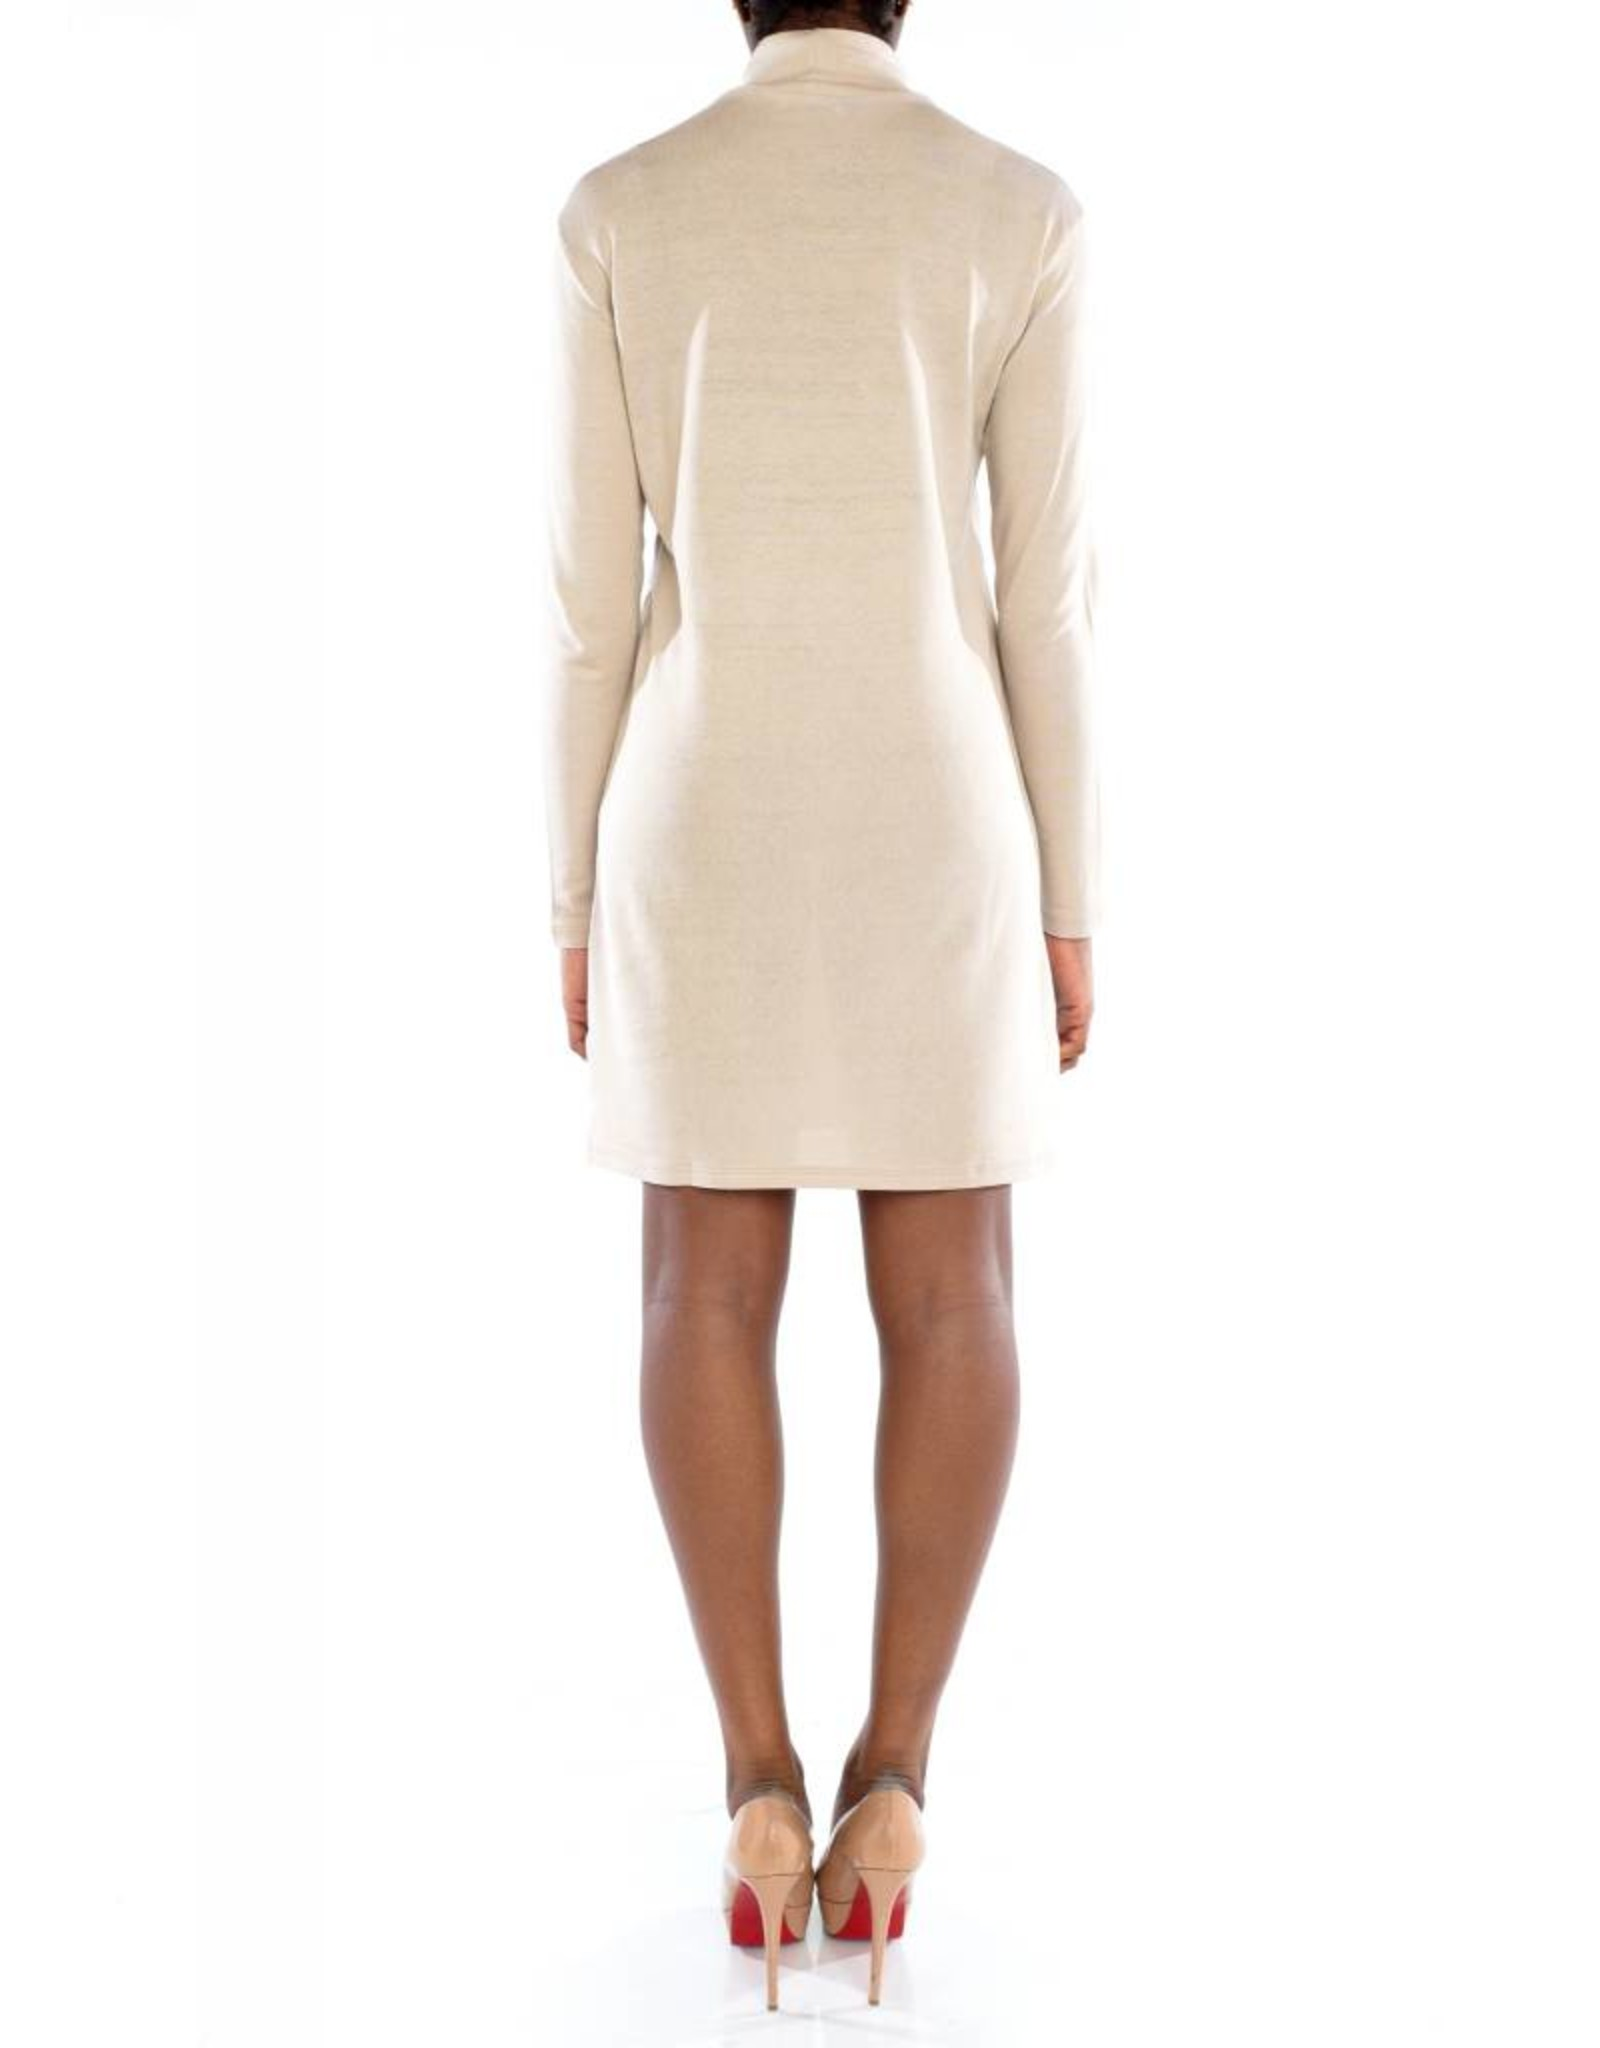 Ciara Sweater Tan One Size